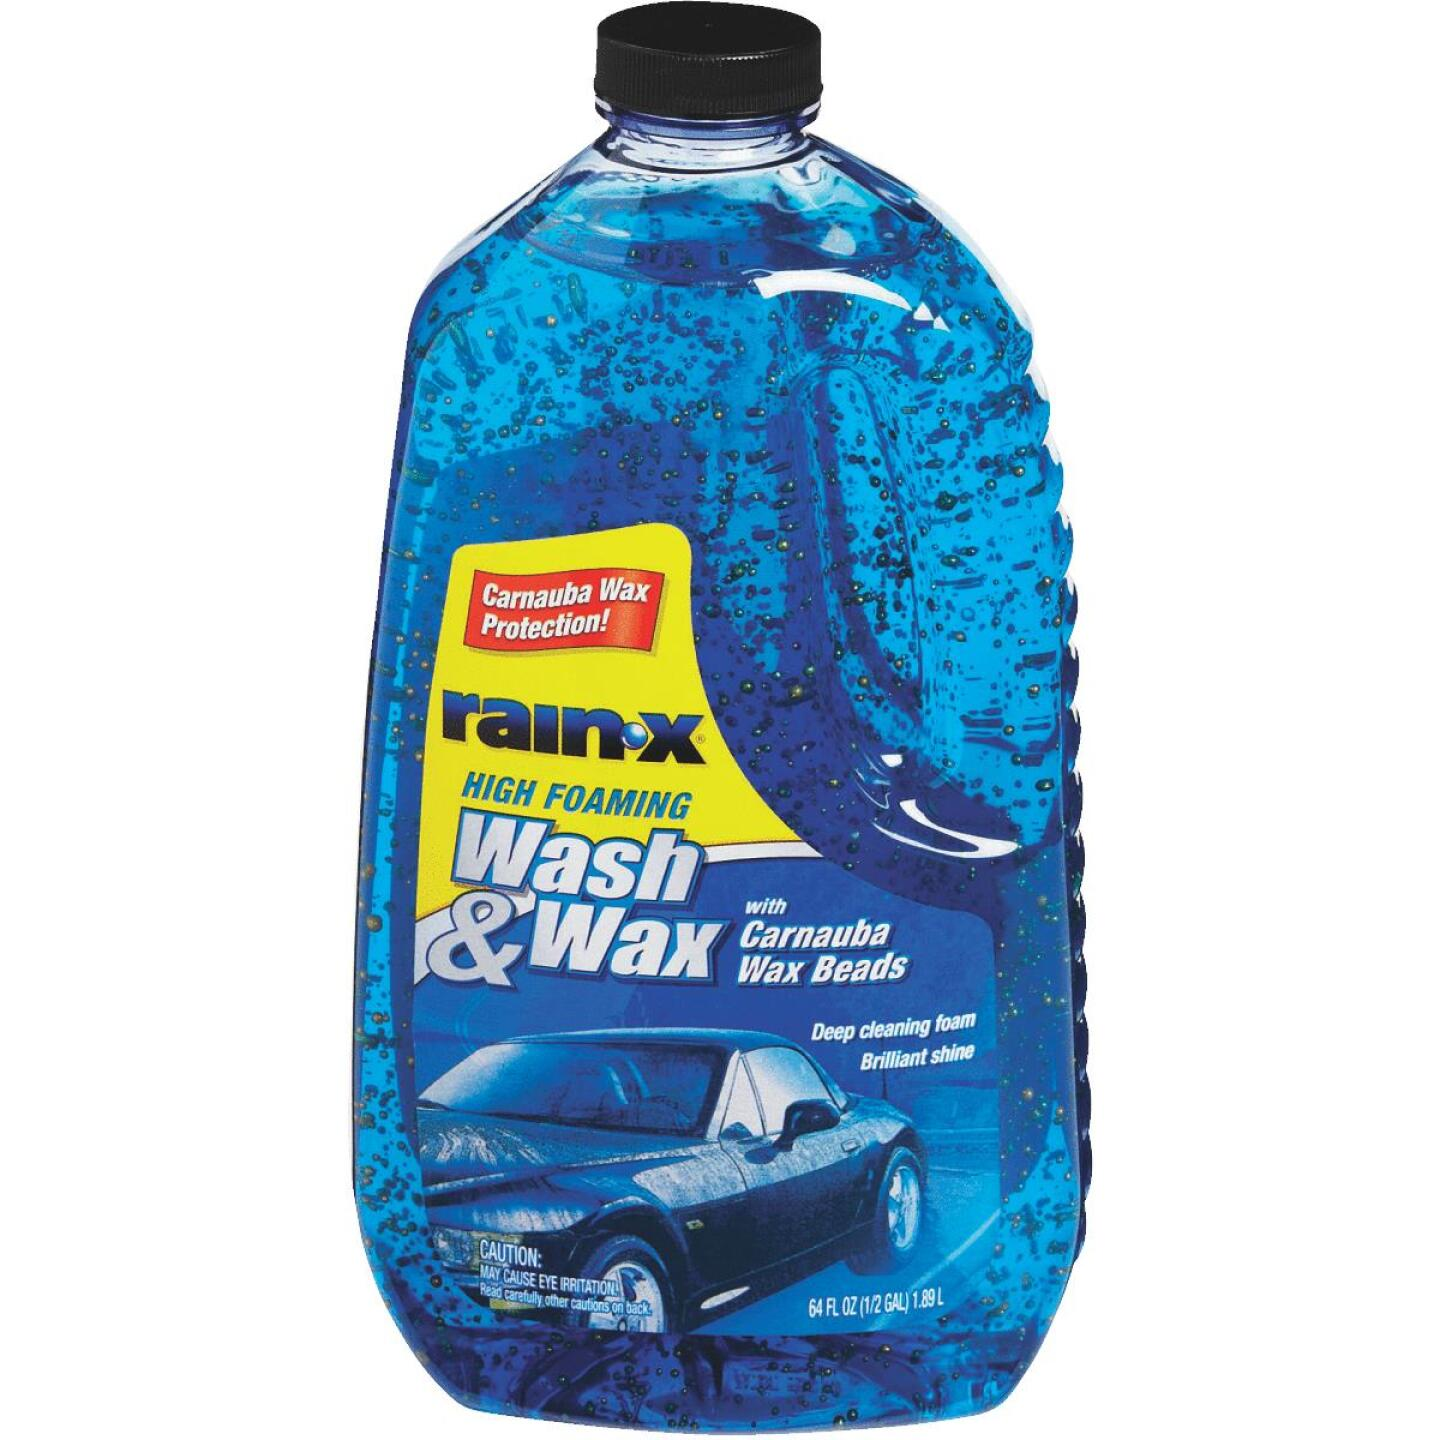 RAIN-X 64 oz Foam with Carnauba Wax Beads Car Wash Image 1